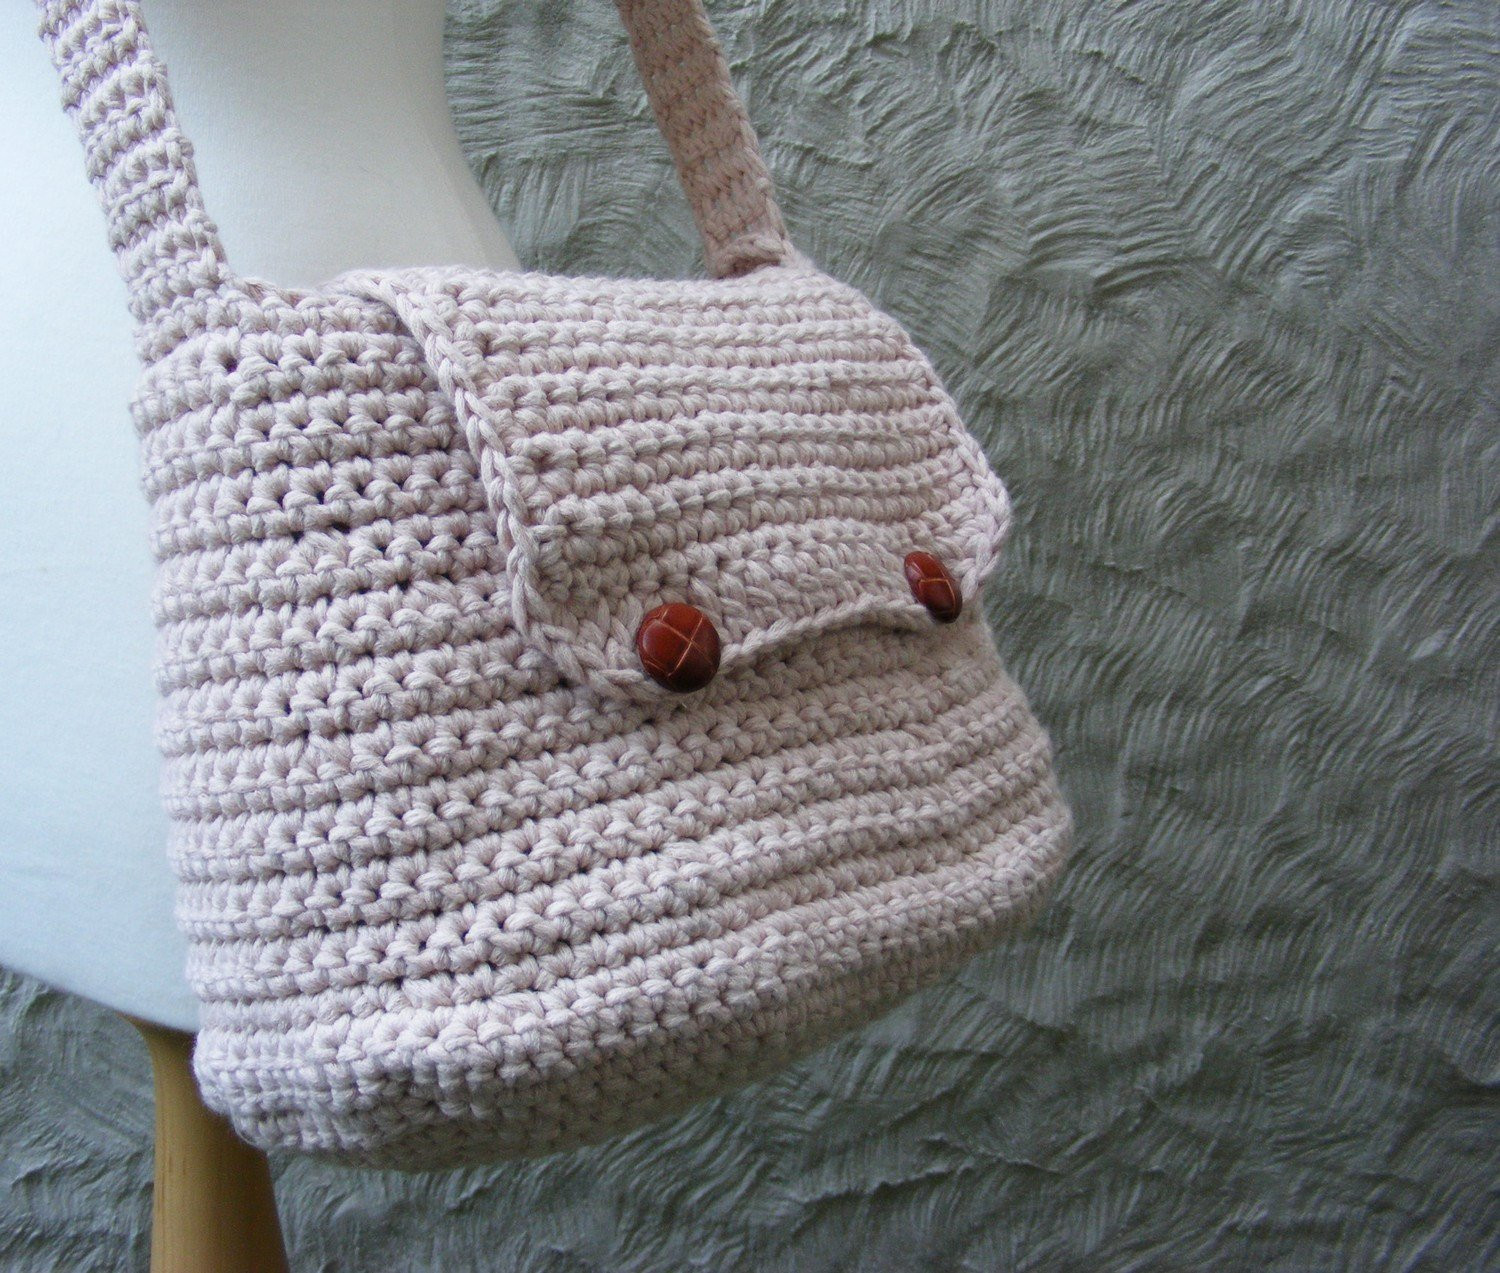 Easy Crochet Patterns New tote Bag Pattern Easy Crochet Messenger Bag Pattern_easy Crochet Patterns